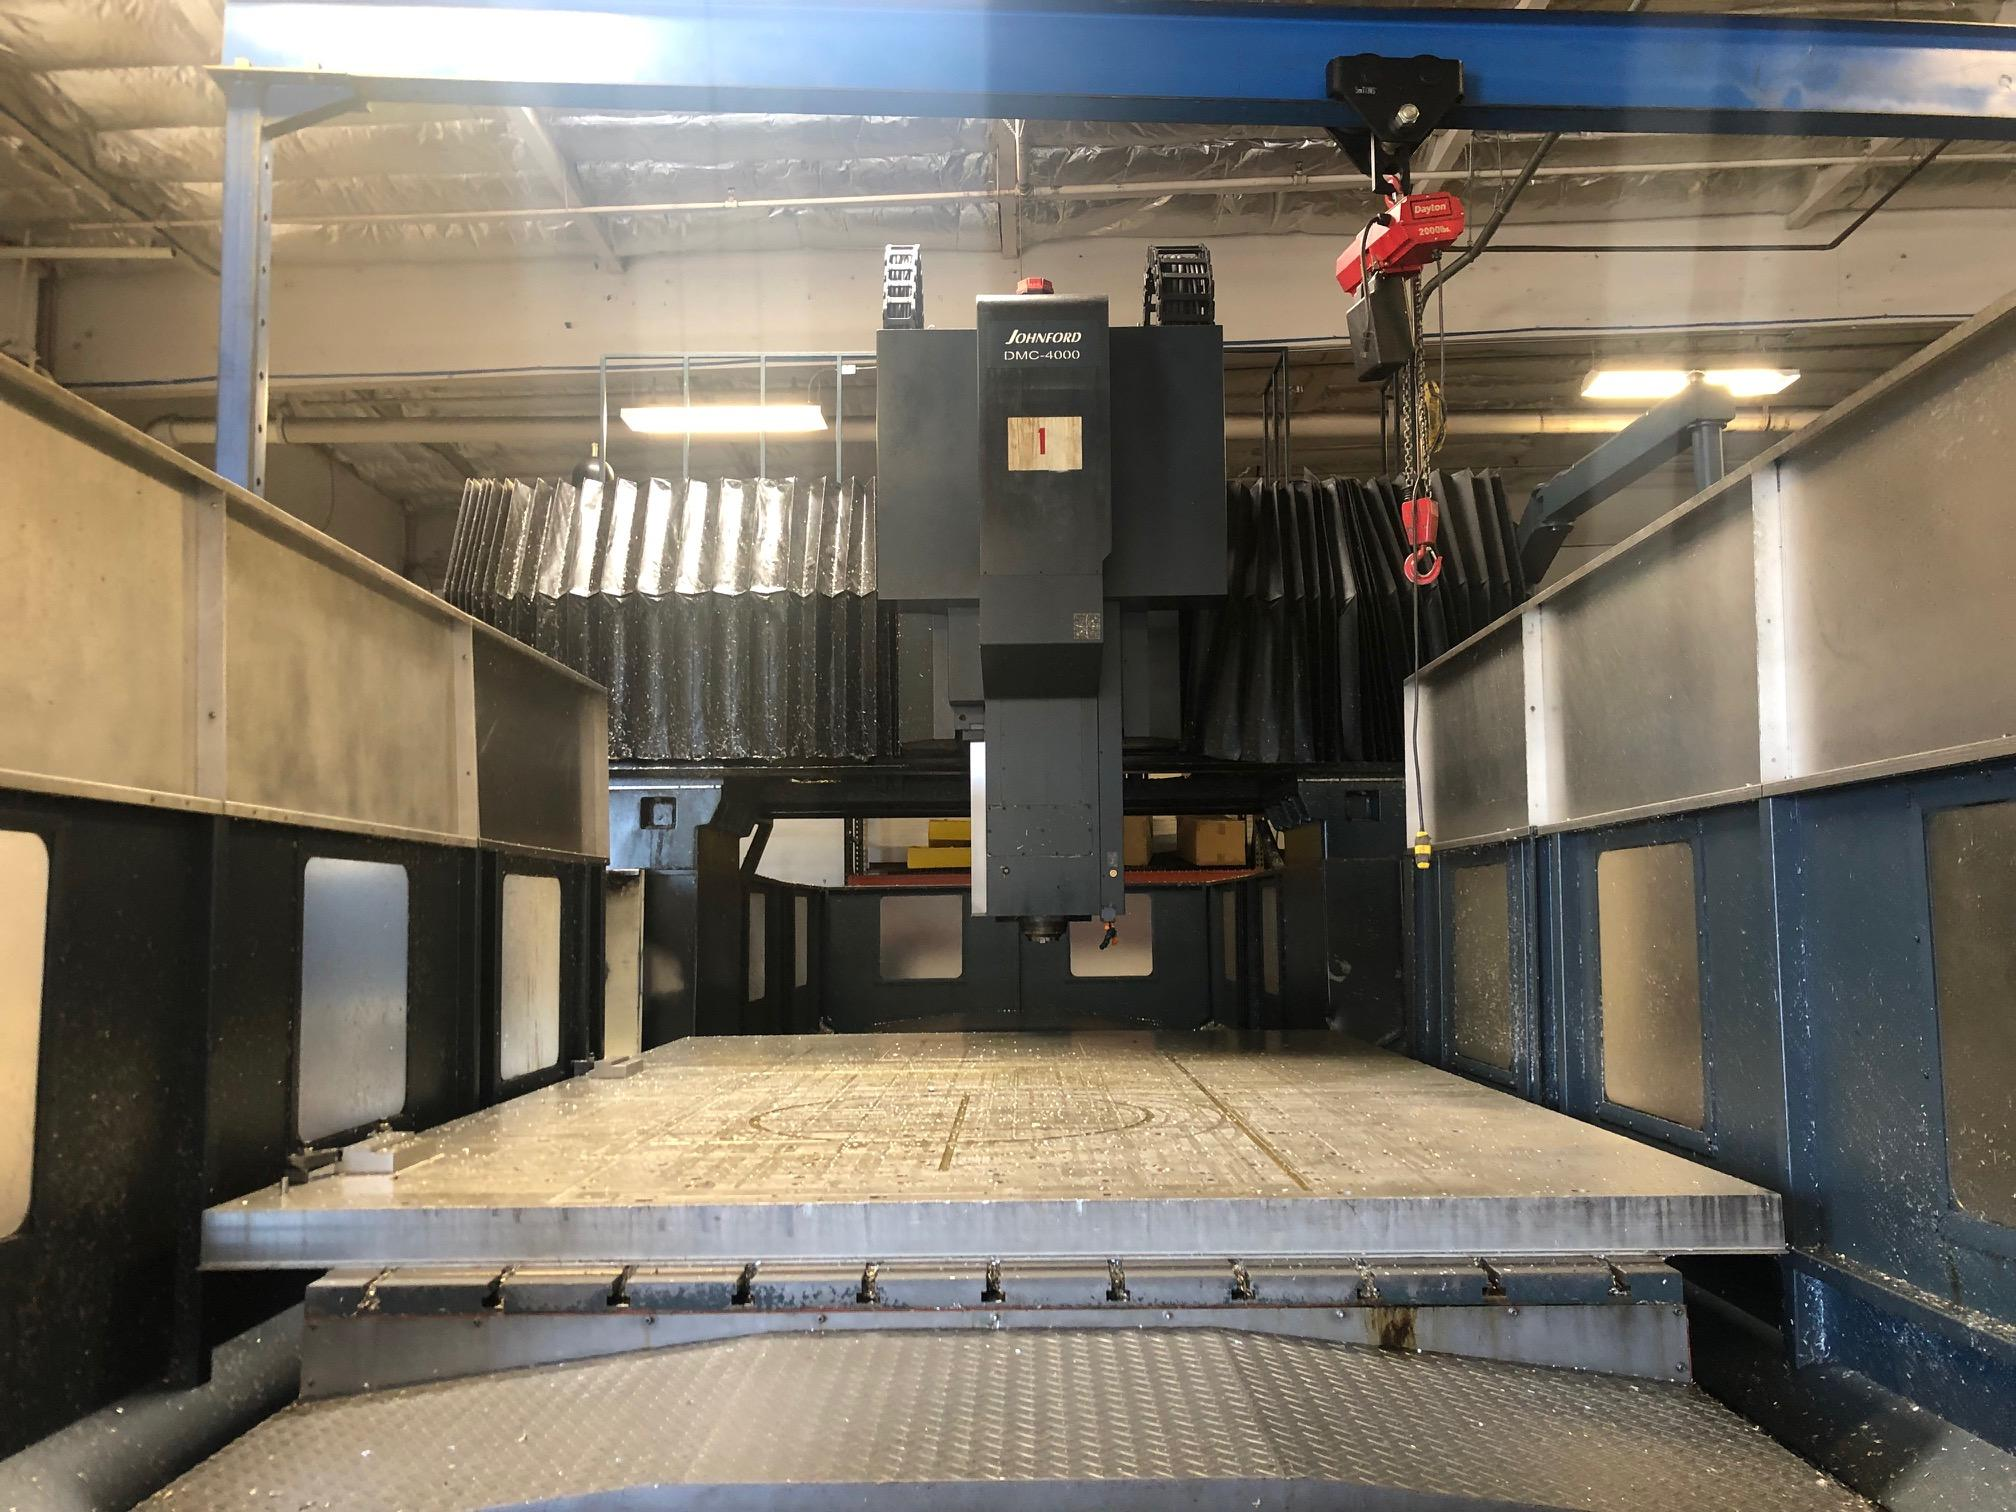 2007 Johnford DMC-4000x2800 CNC Double Column Machining Center